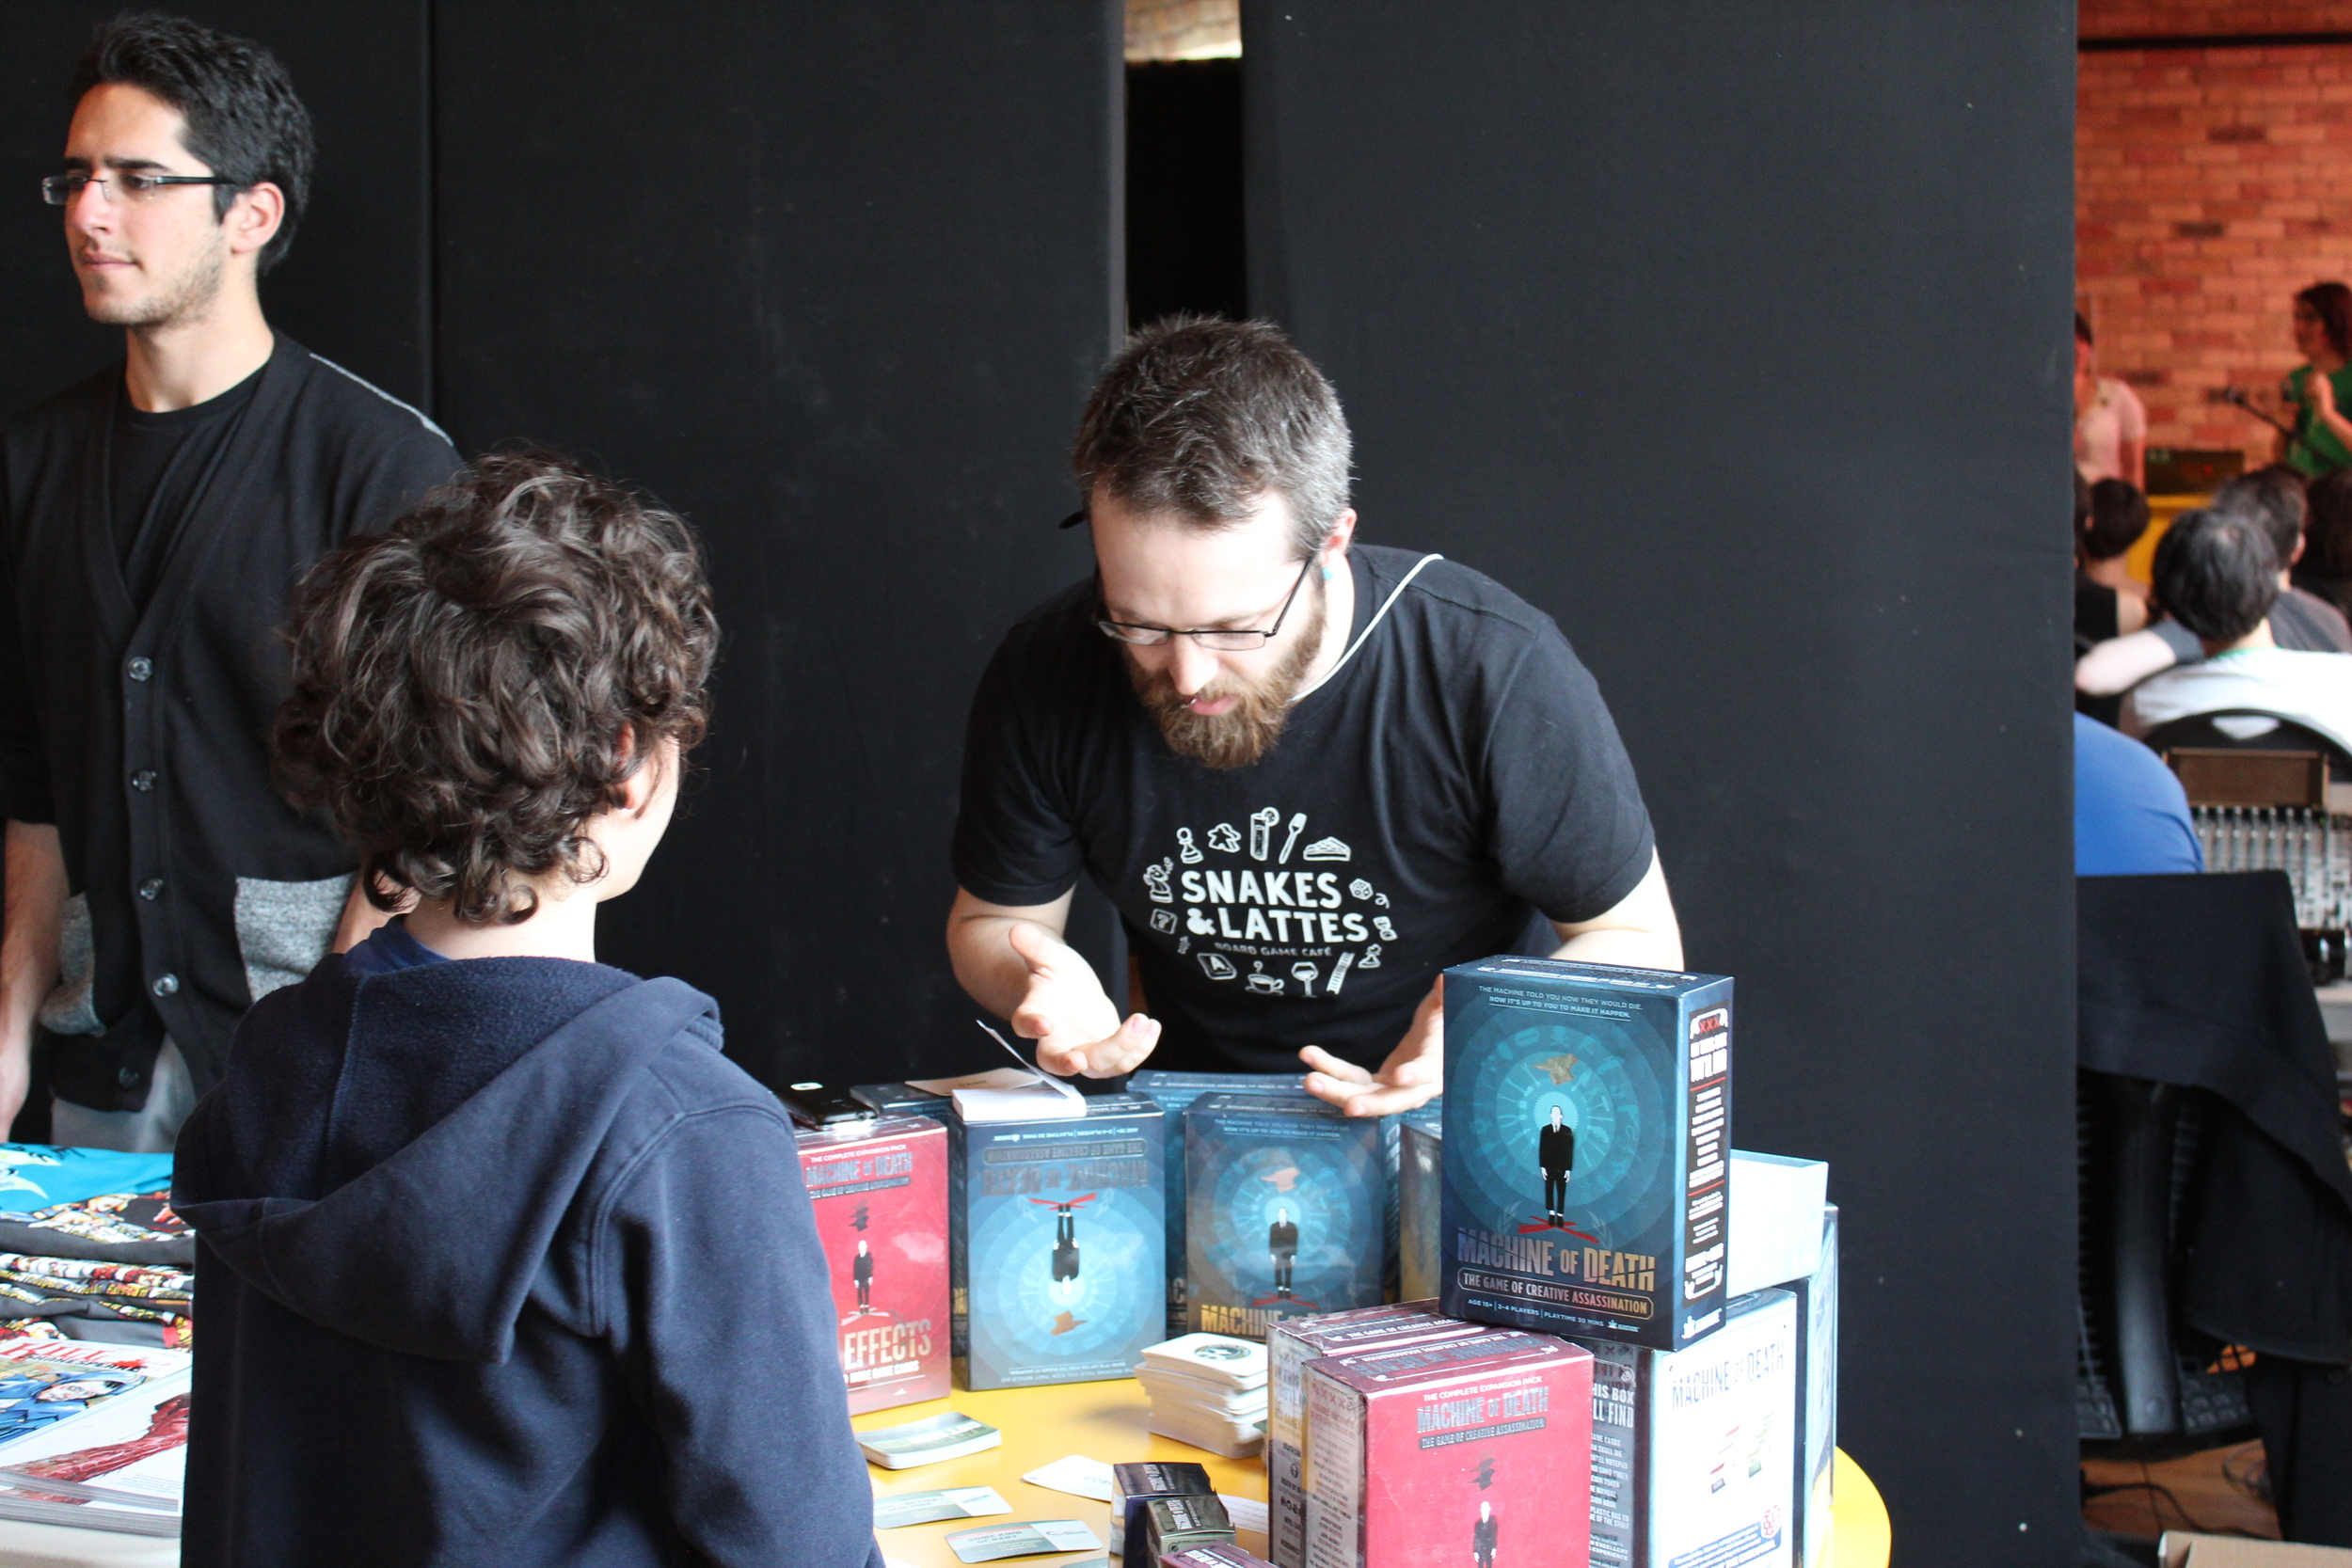 A volunteer from Snakes and Lattes shows off a version of the Machine of Death card game, based on Ryan North's anthology book of the same name.